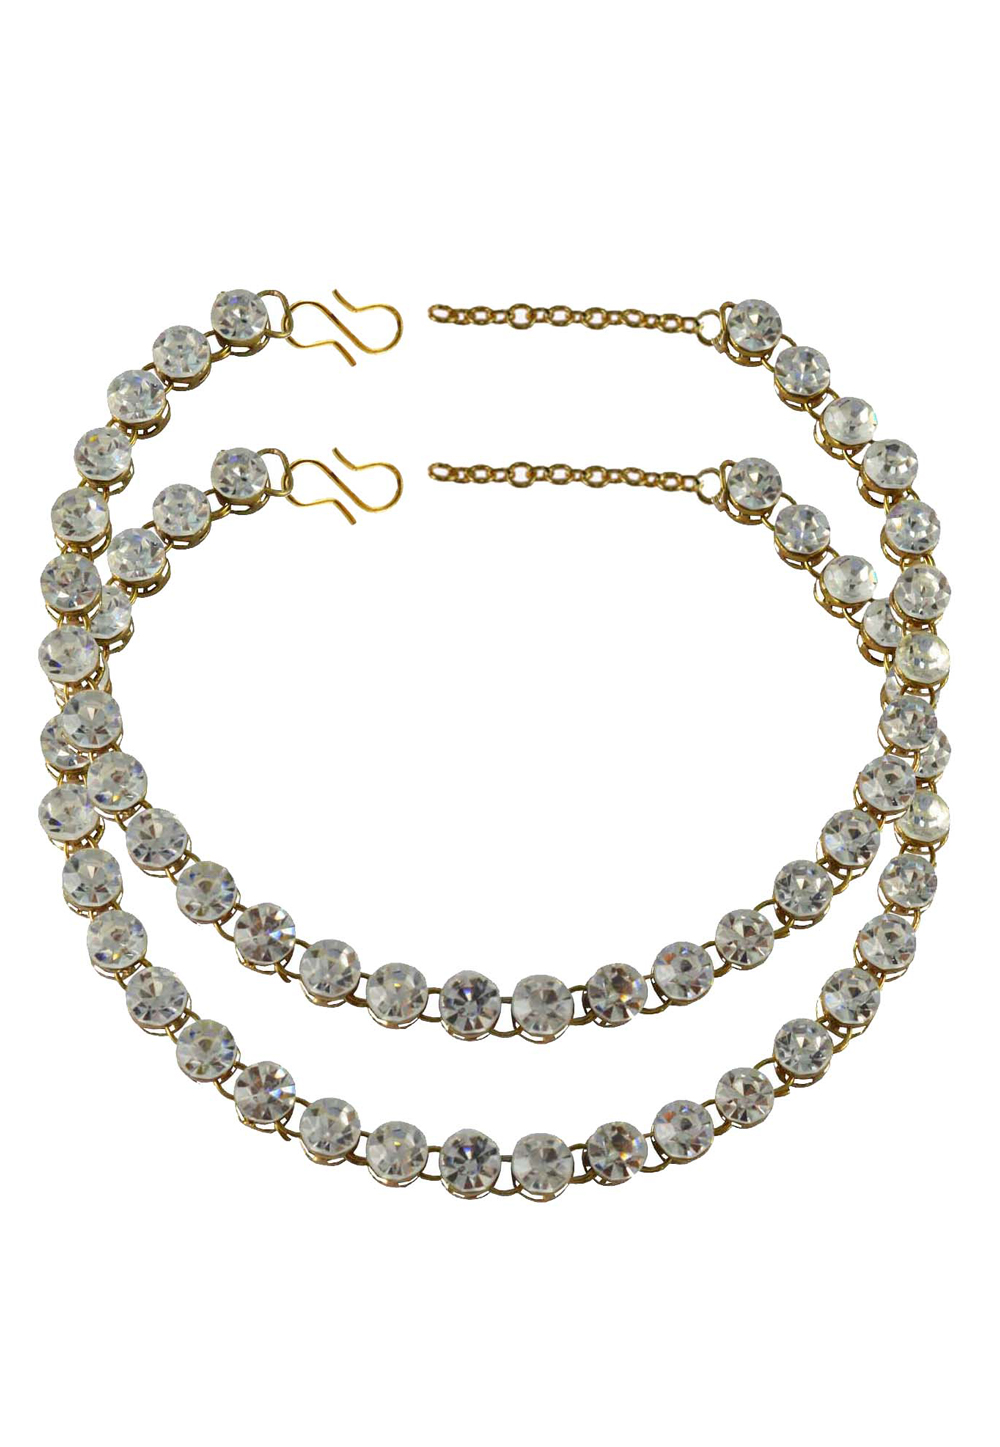 White Brass Gold Plated Anklets 171267